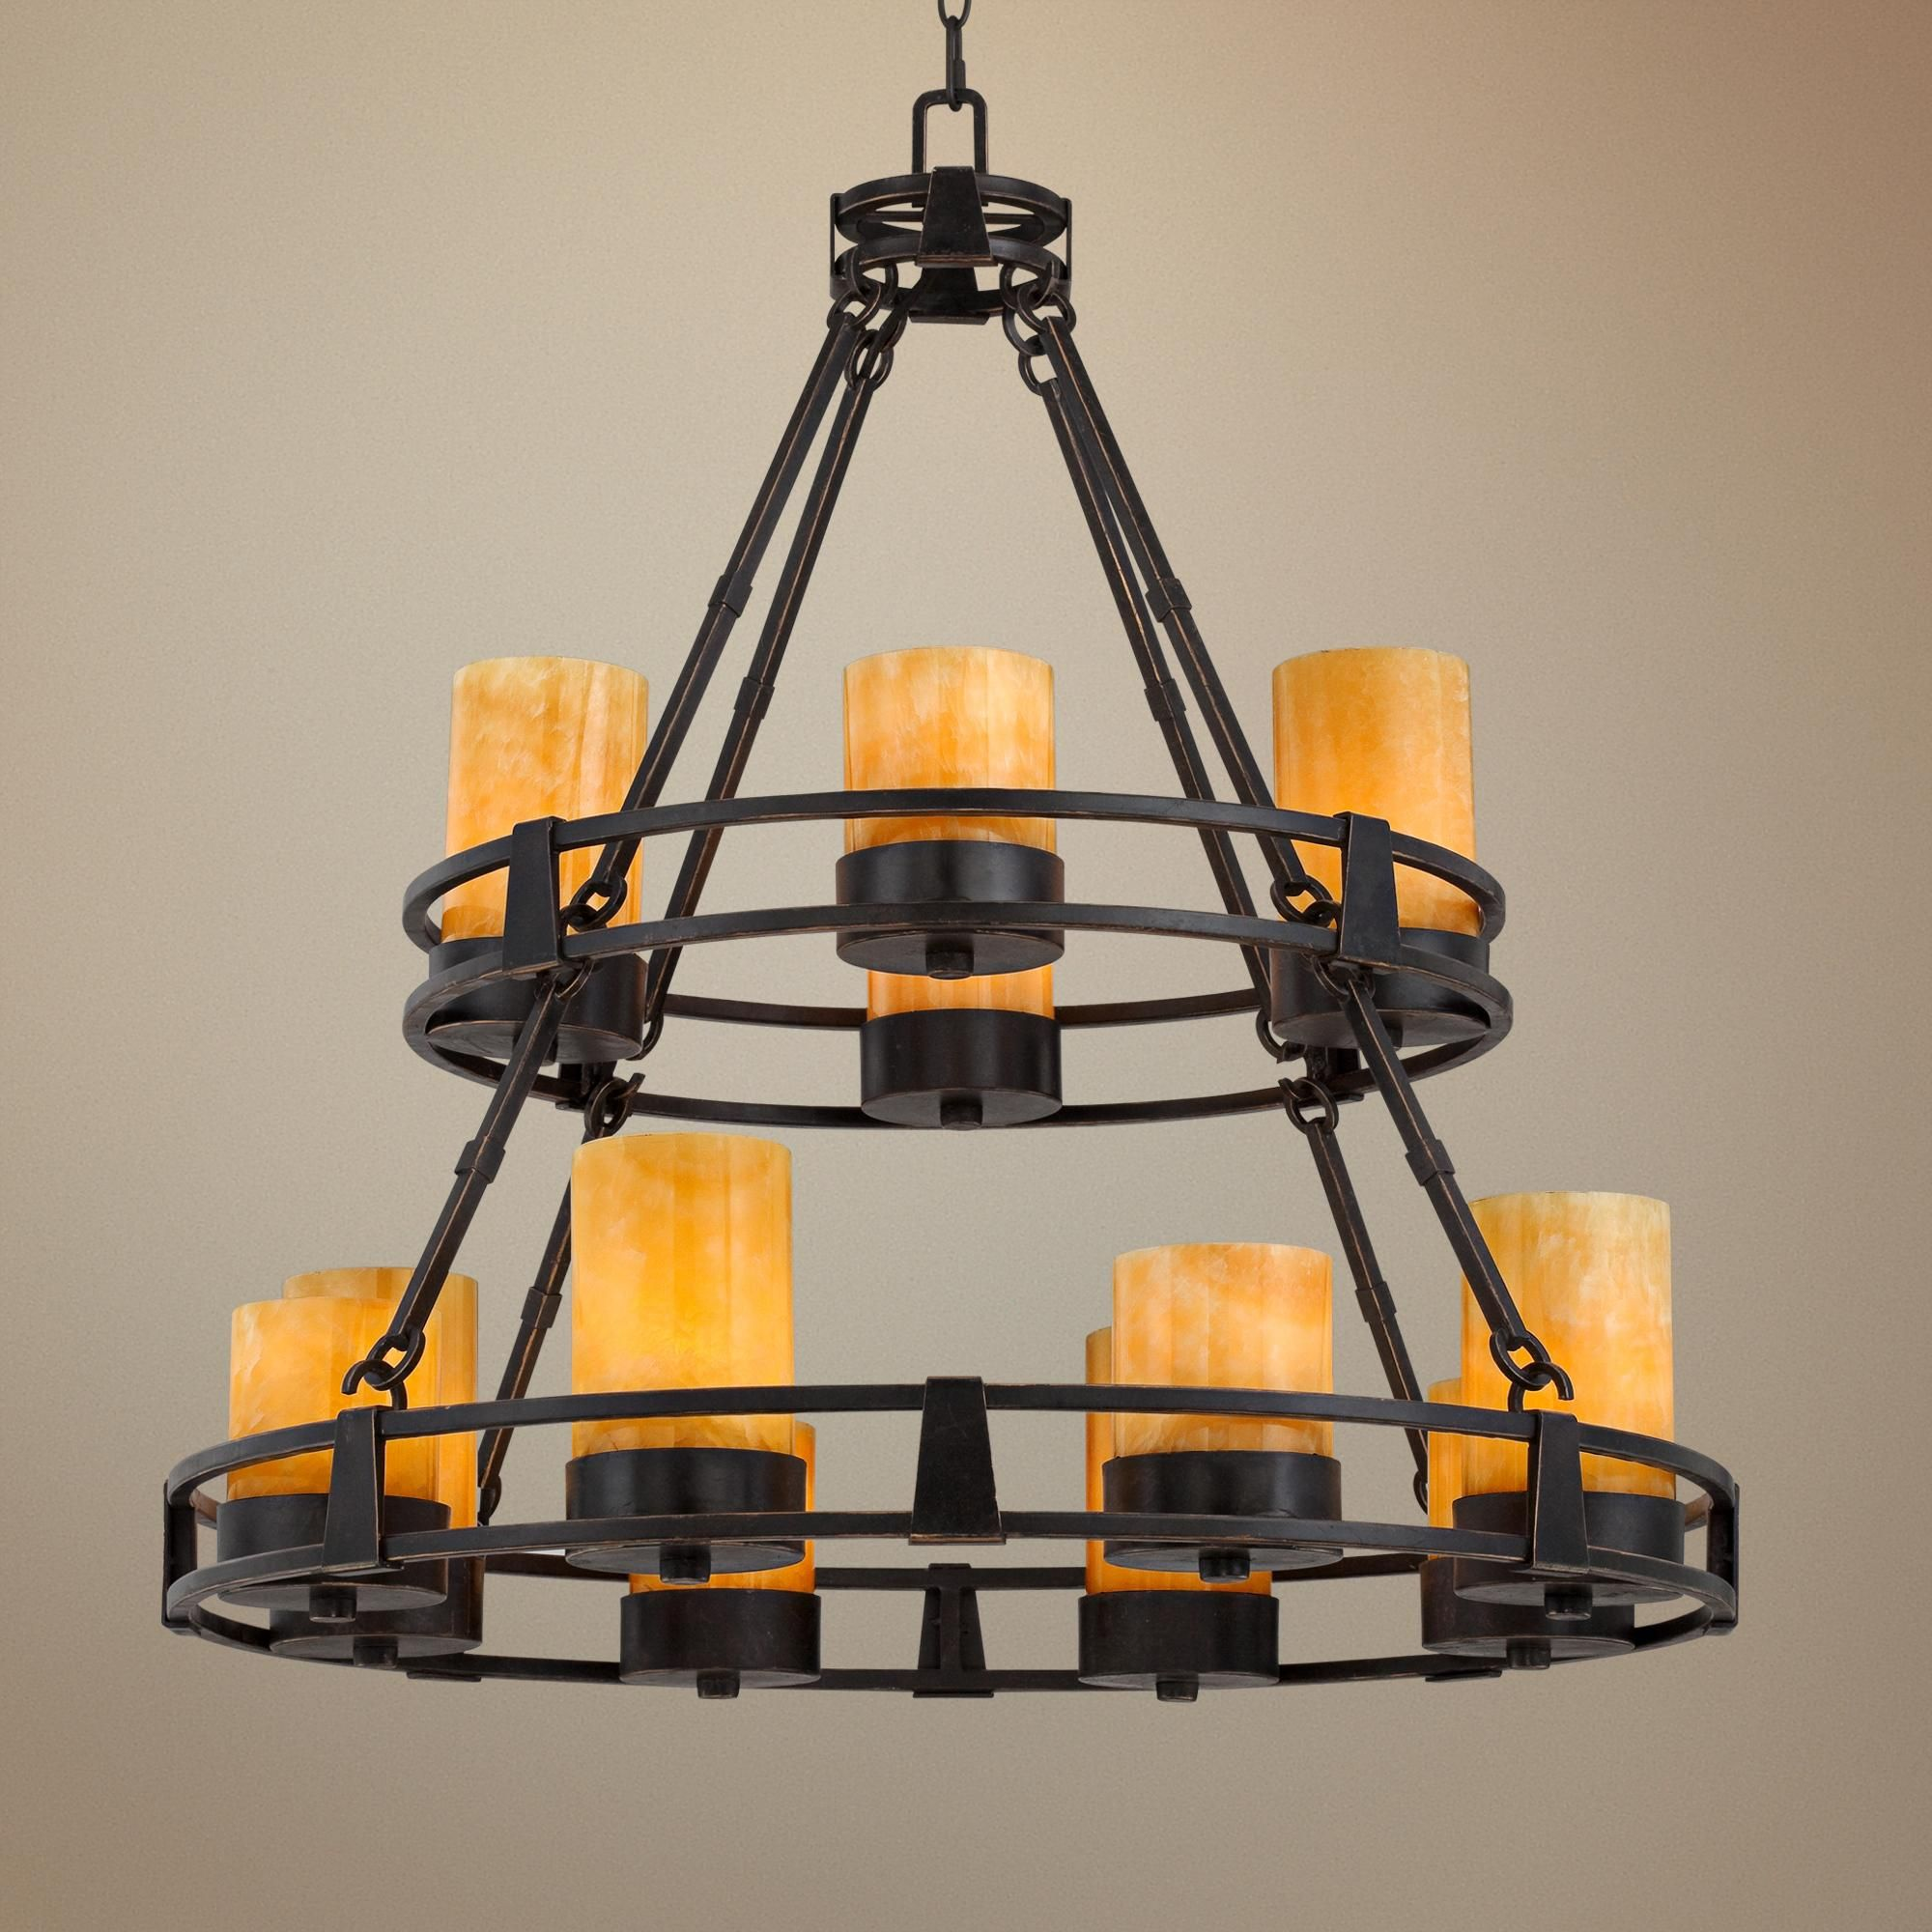 Sunset yx Stone 12 Light Faux Candle Chandelier Style R6623